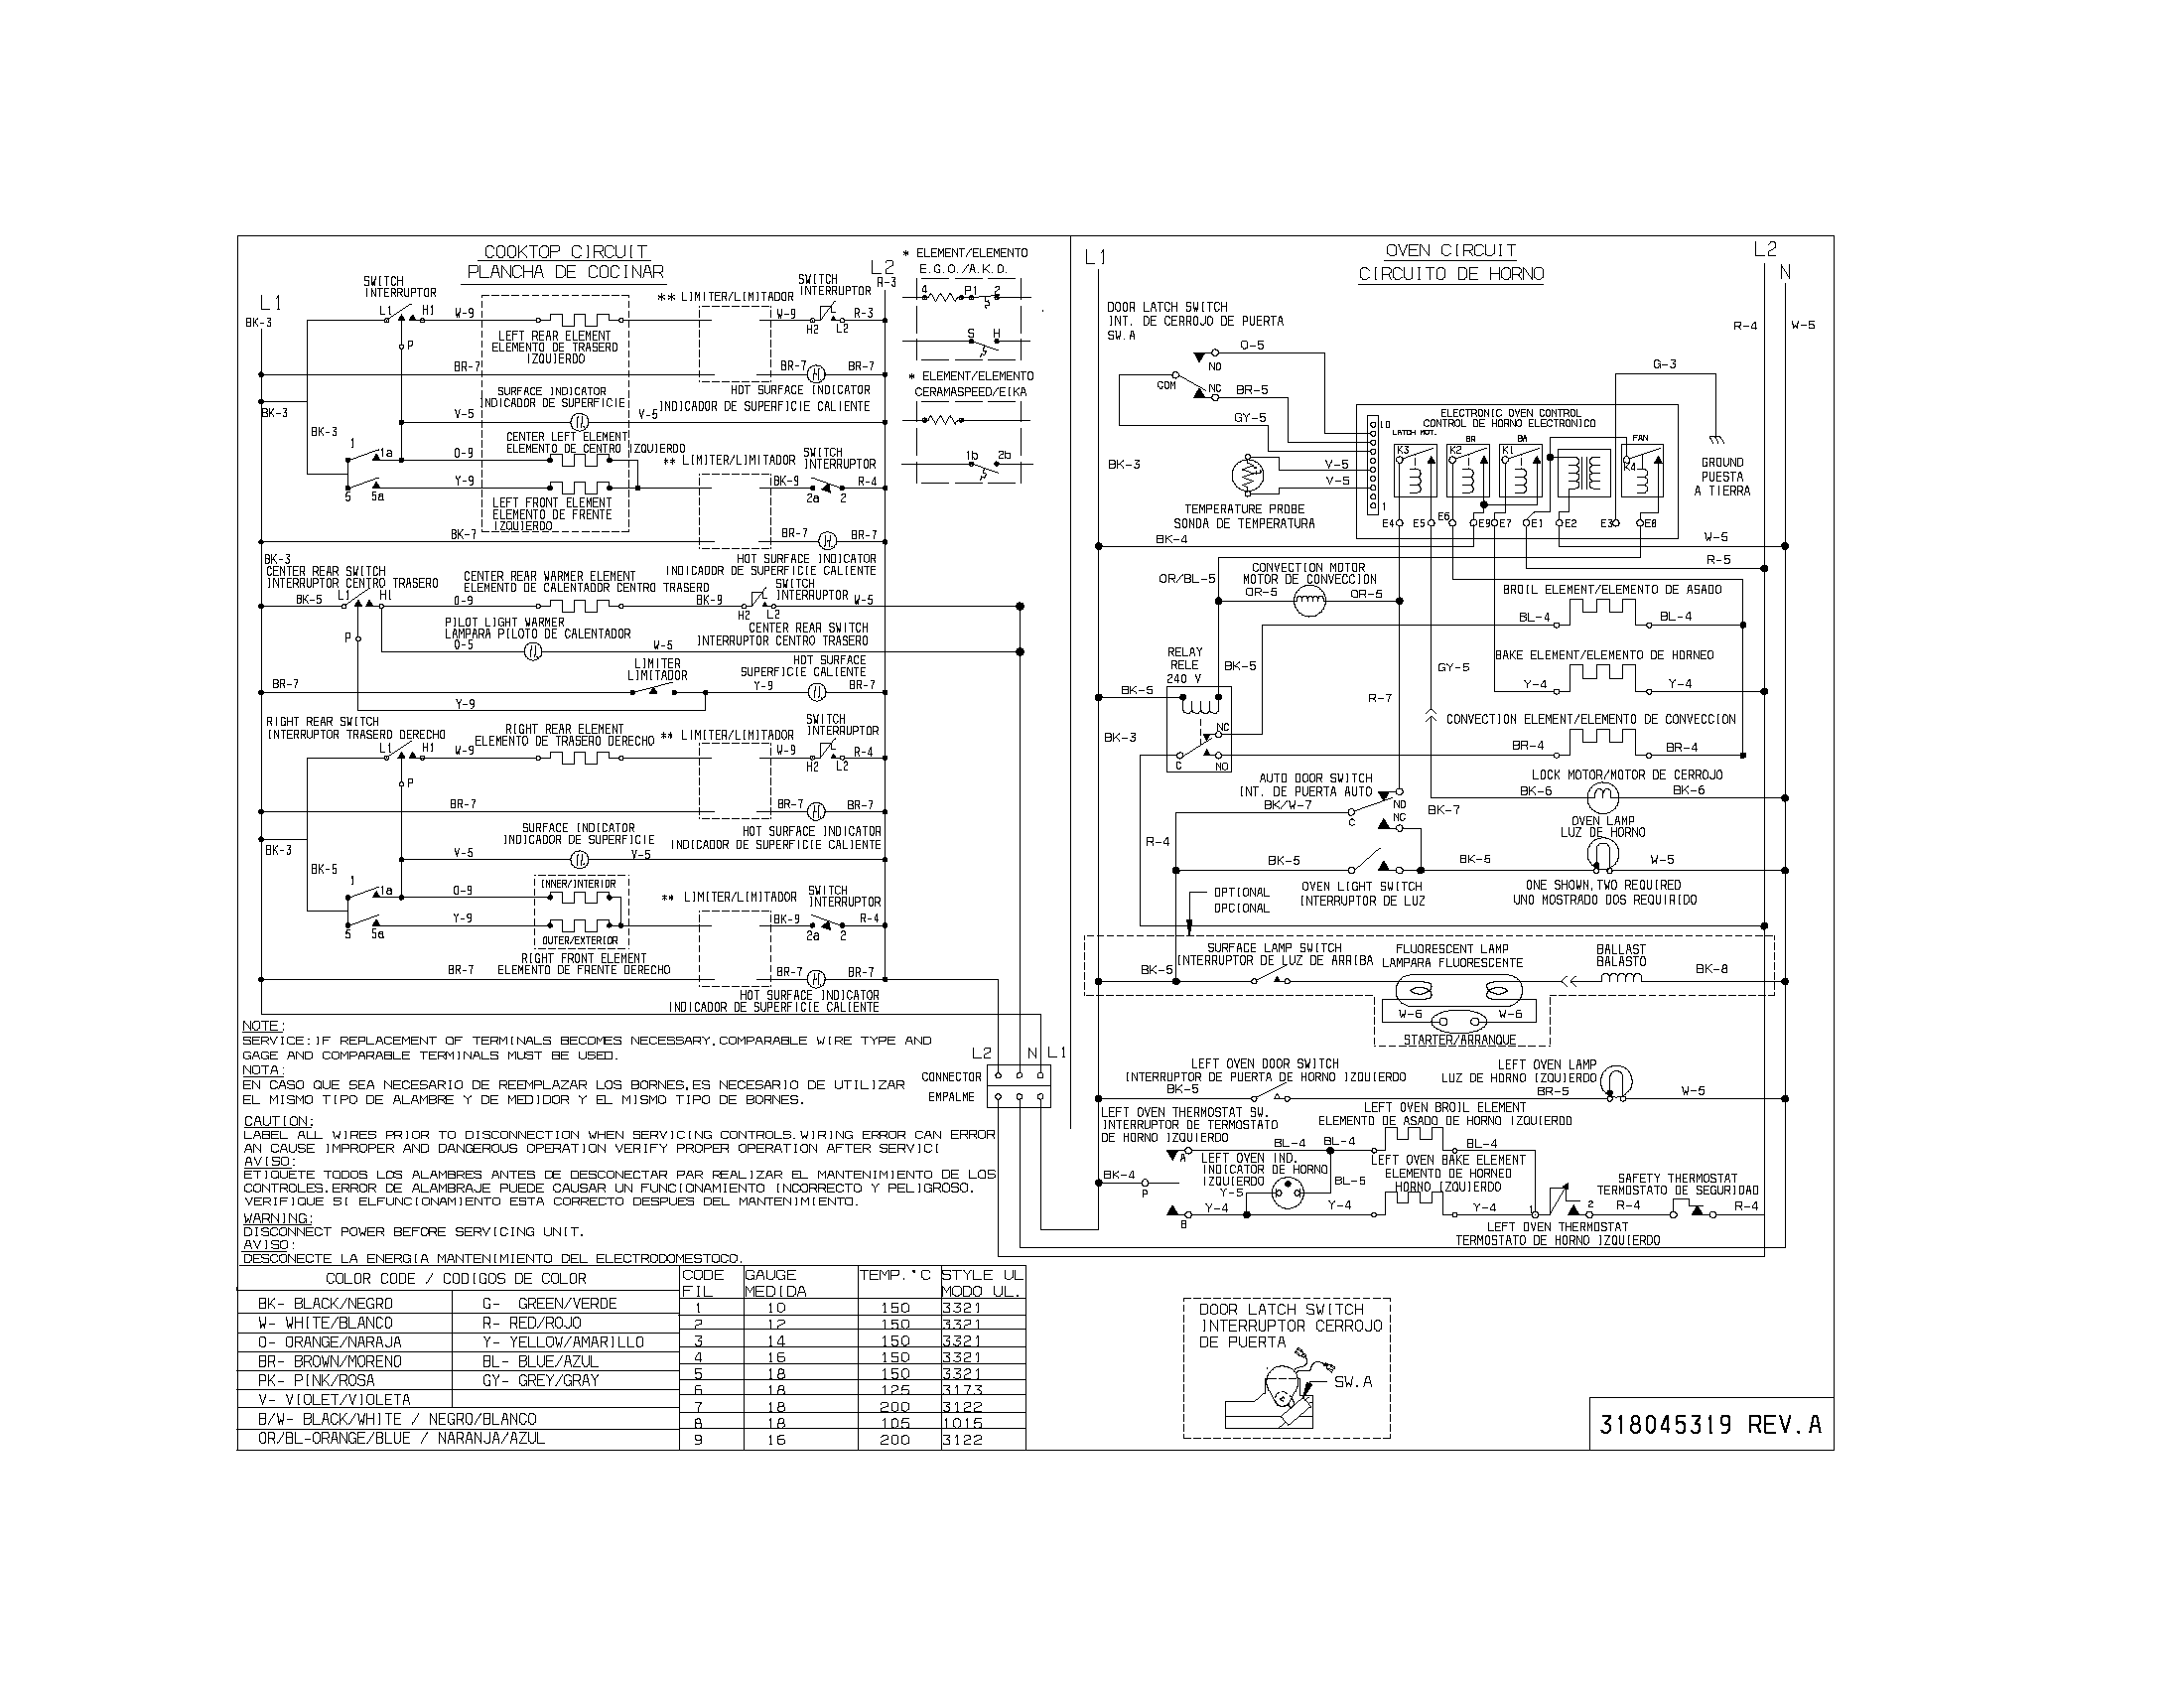 wiring diagram parts dishwasher electrical problems chapter 6 dishwasher repair hobart lxih wiring diagram at n-0.co